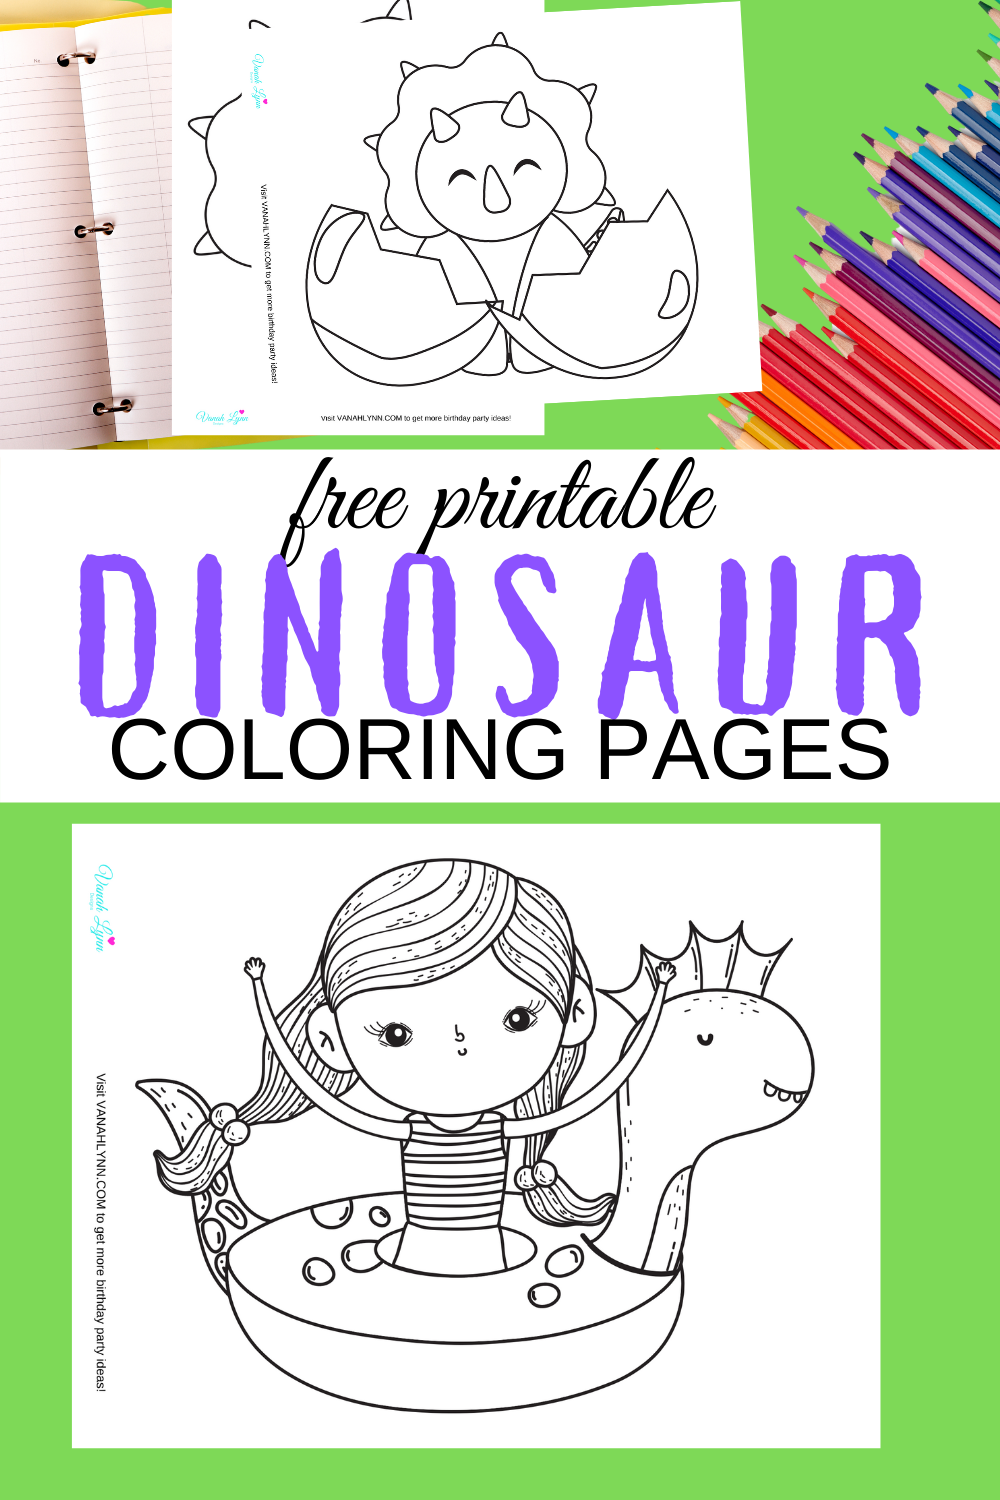 free printable dinosaur coloring sheets for a birthday party